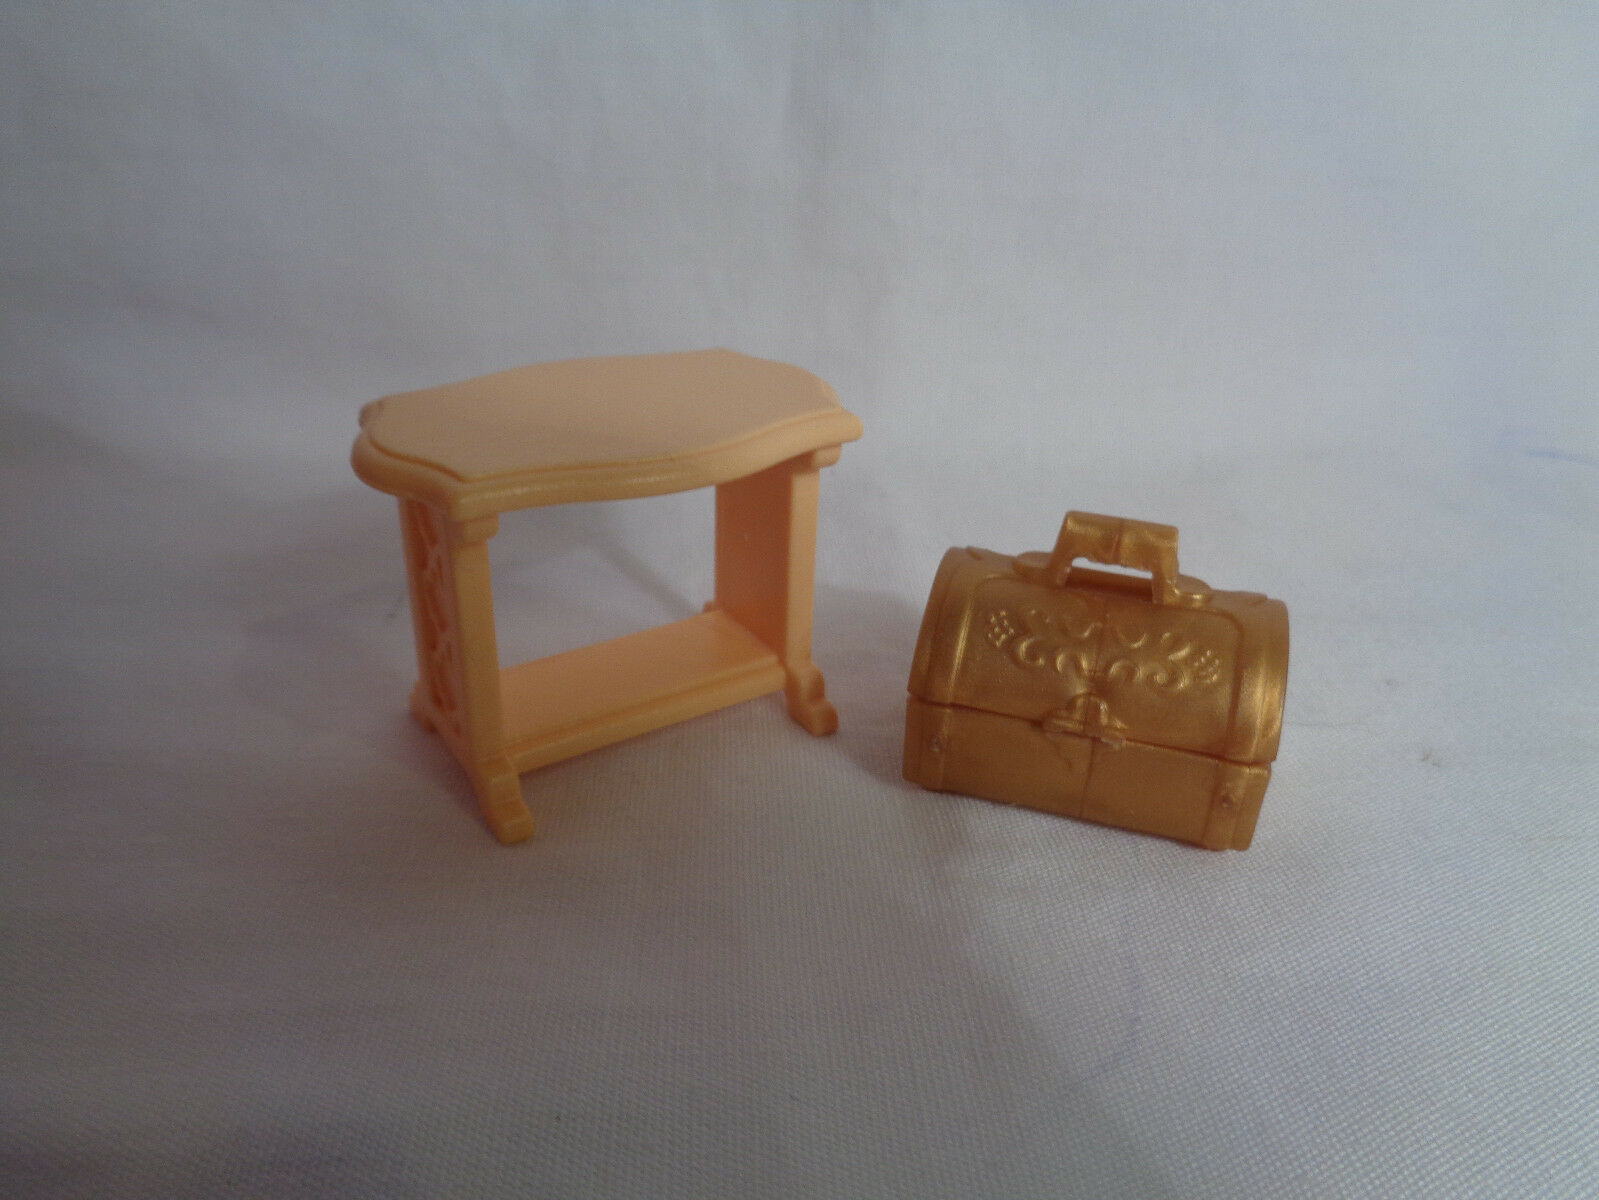 Playmobil Princess Castle Replacement Tan Accent Table & Small Chest image 2